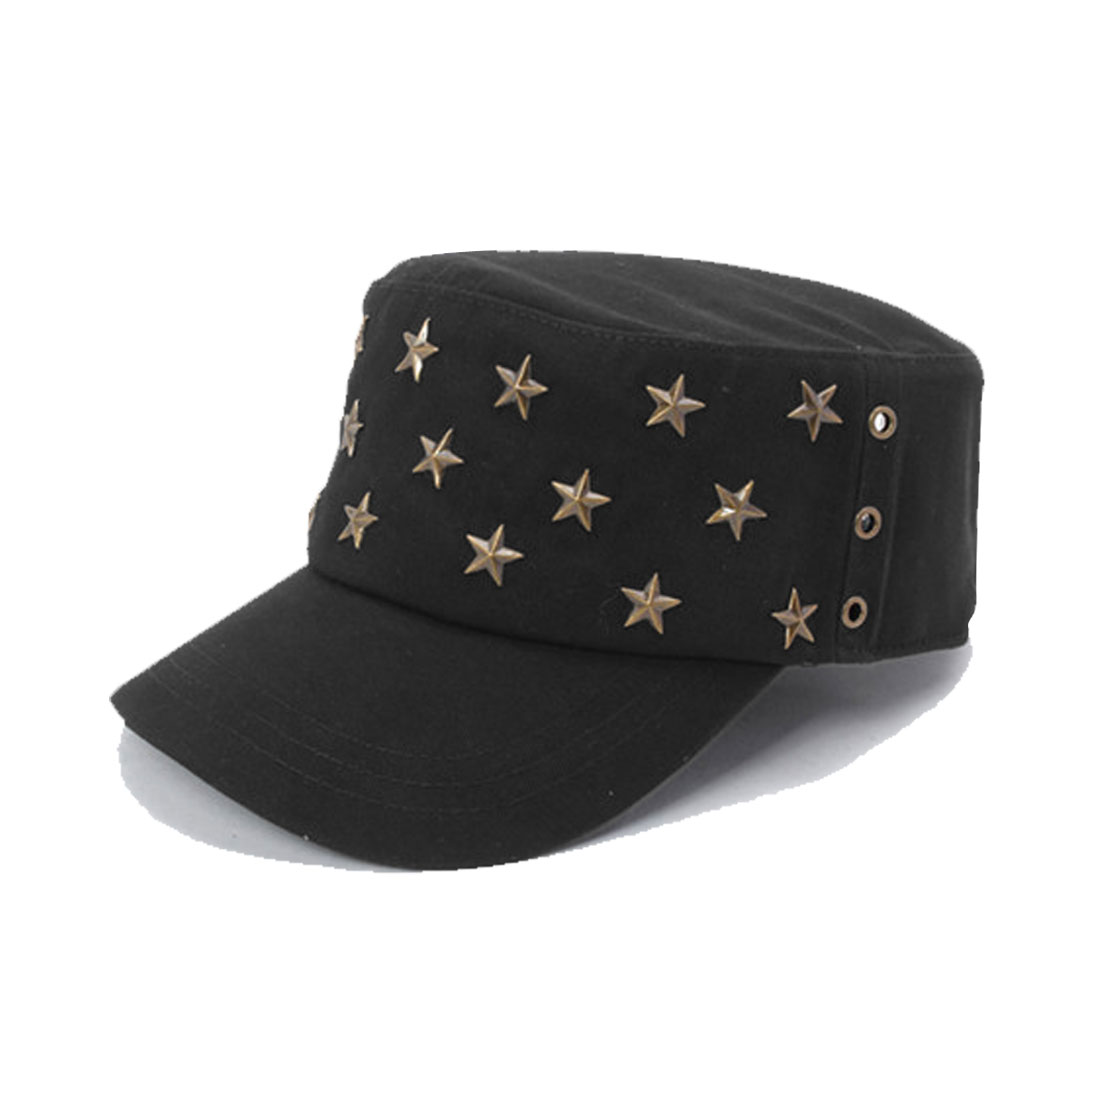 Men Women Black Metal Stars Decor Buttoned Adjustable Band Cap Hat